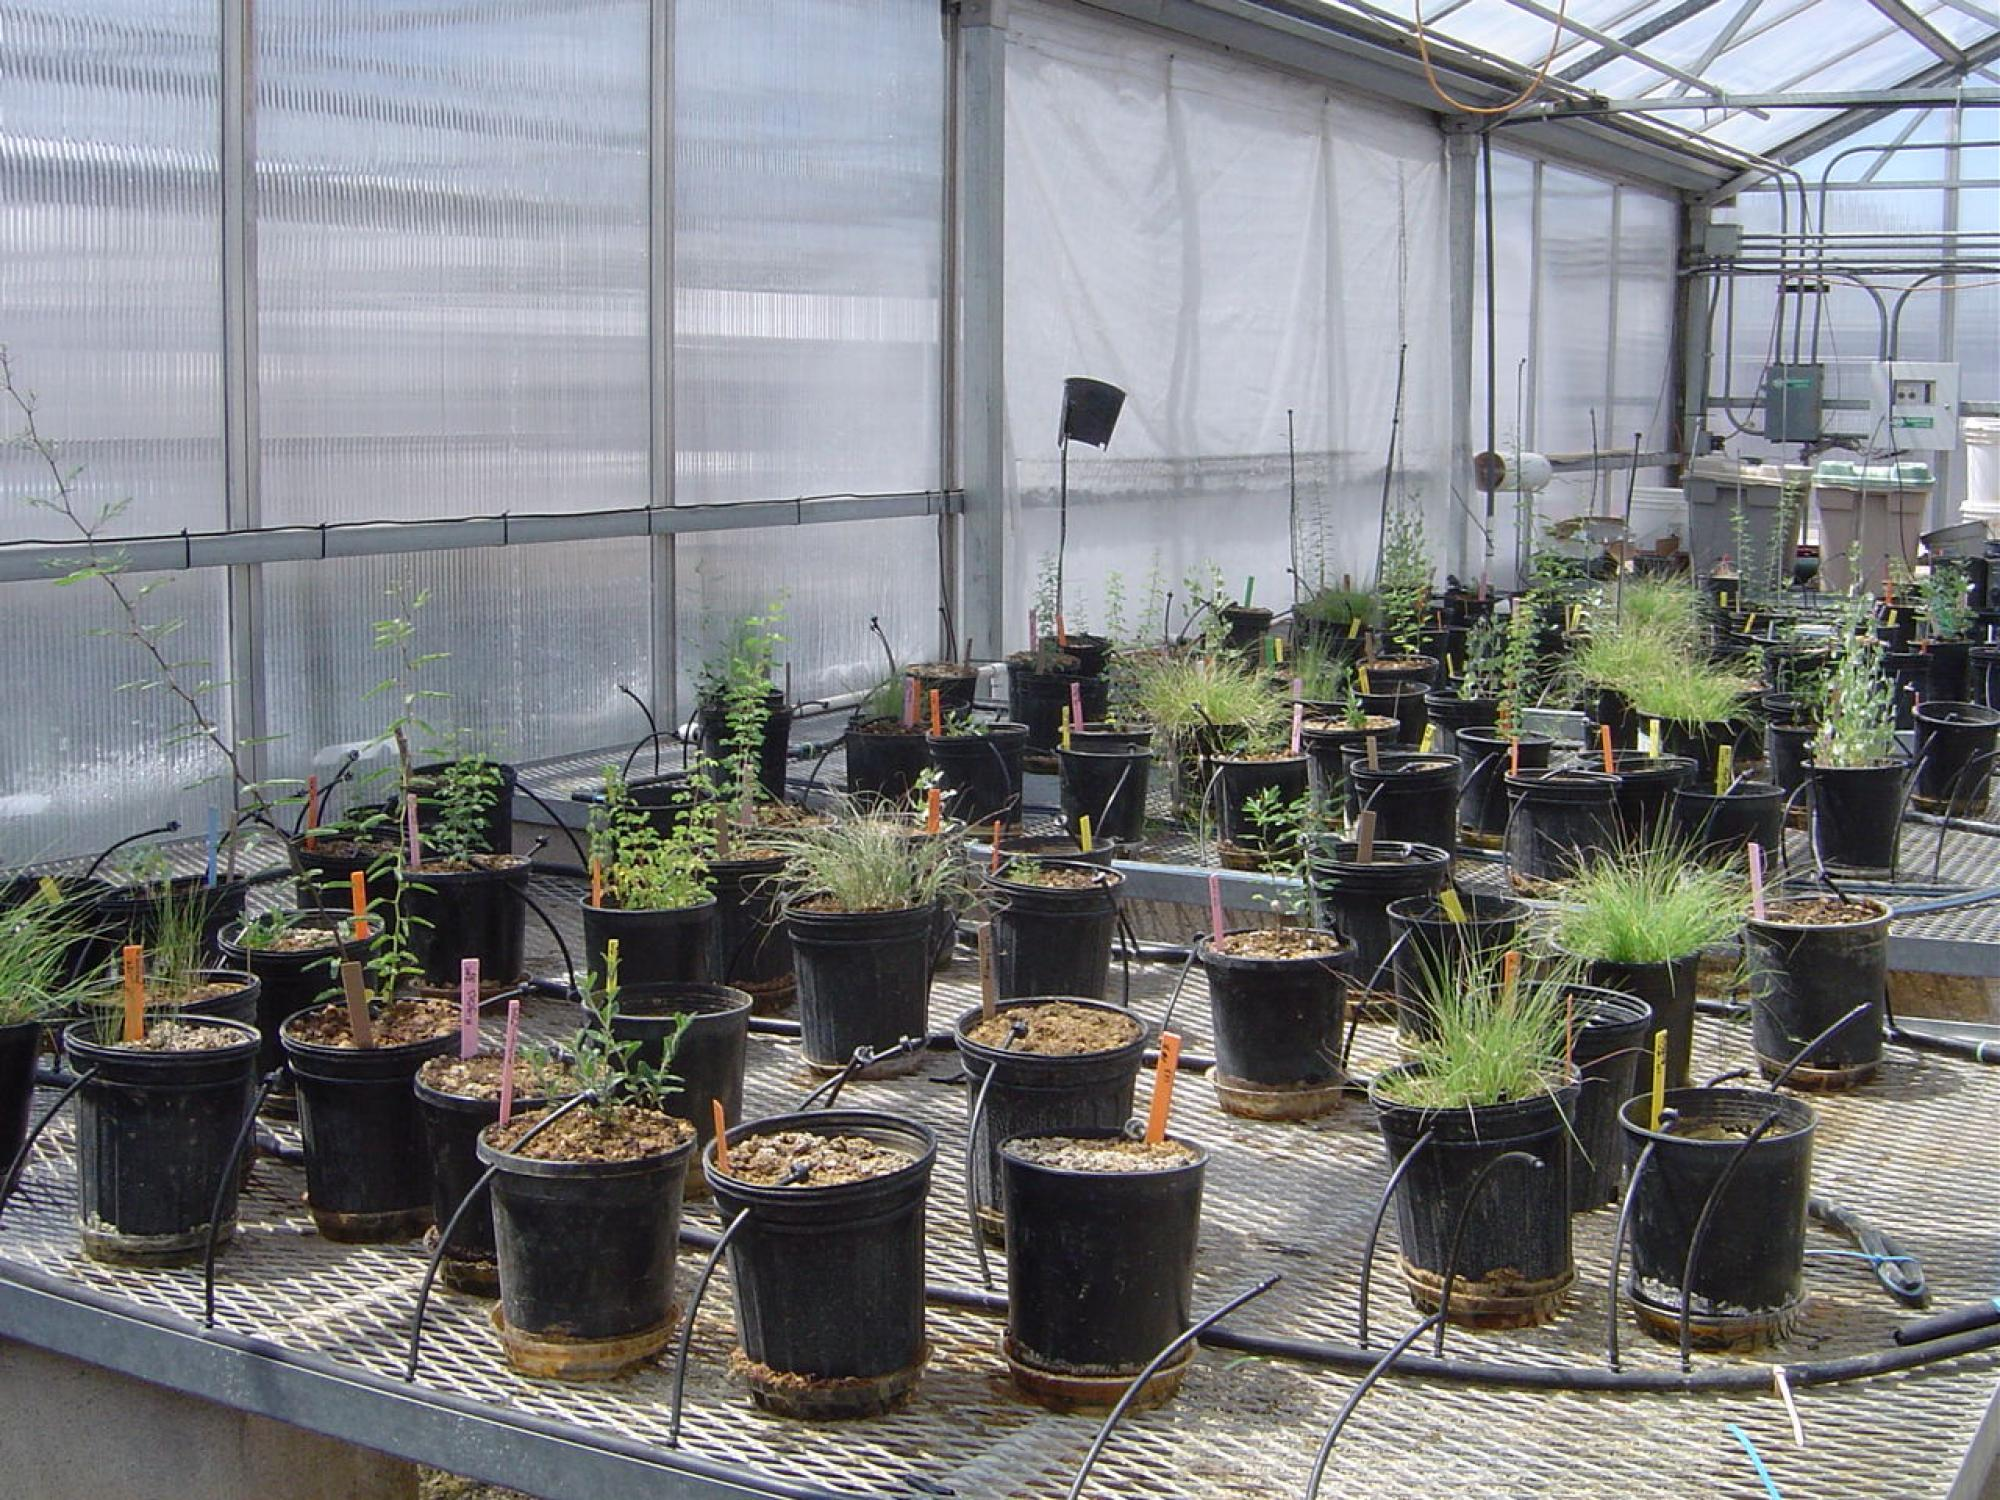 A preliminary greenhouse trial was conducted to find out which native desert plants could grow in the Iron King mine tailings without taking up metals.